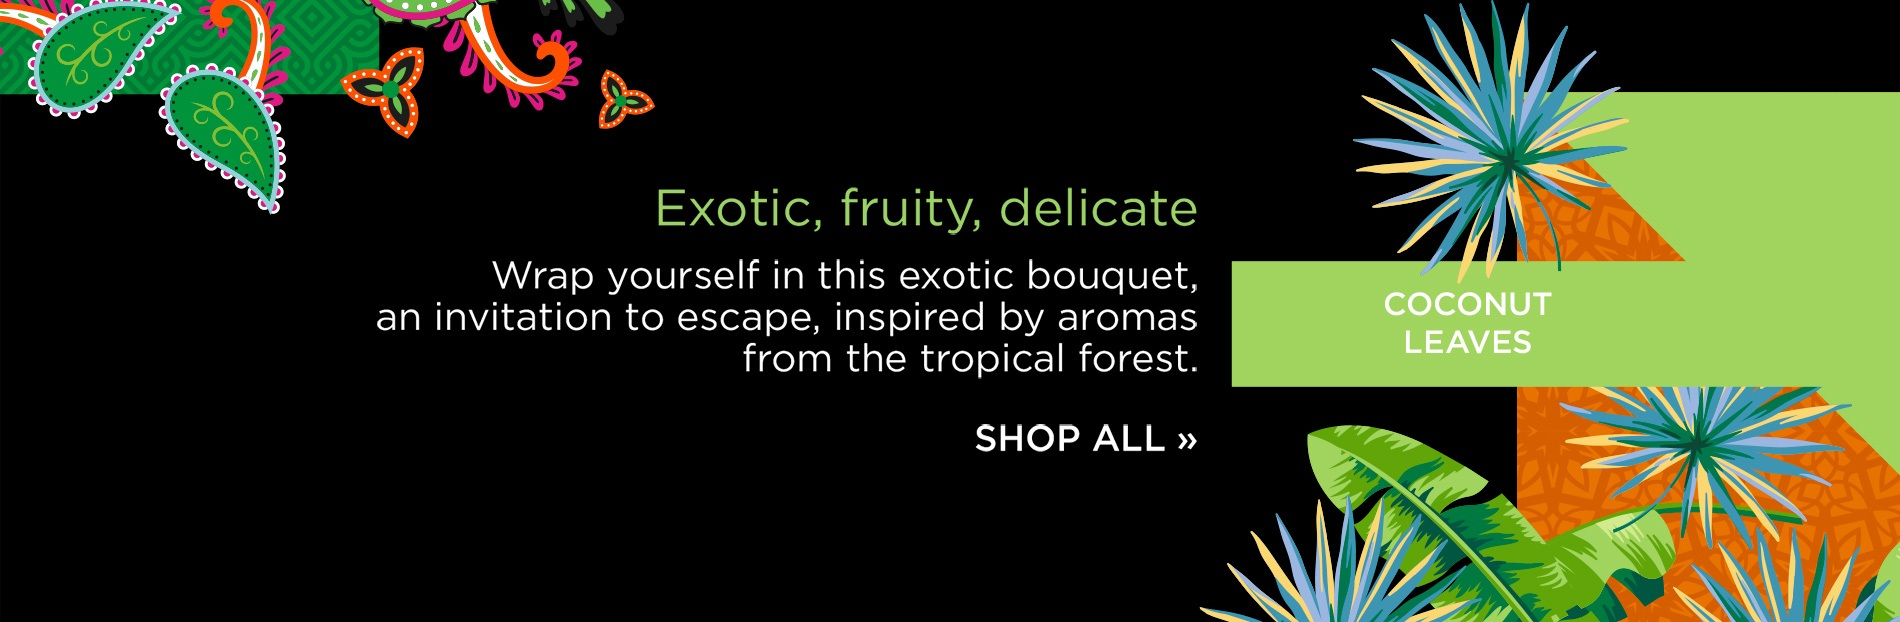 Exotic, fruity, delicate. Wrap yourself in this exotic bouquet, an invitation to escape, inspired by aromas from the tropical forest.